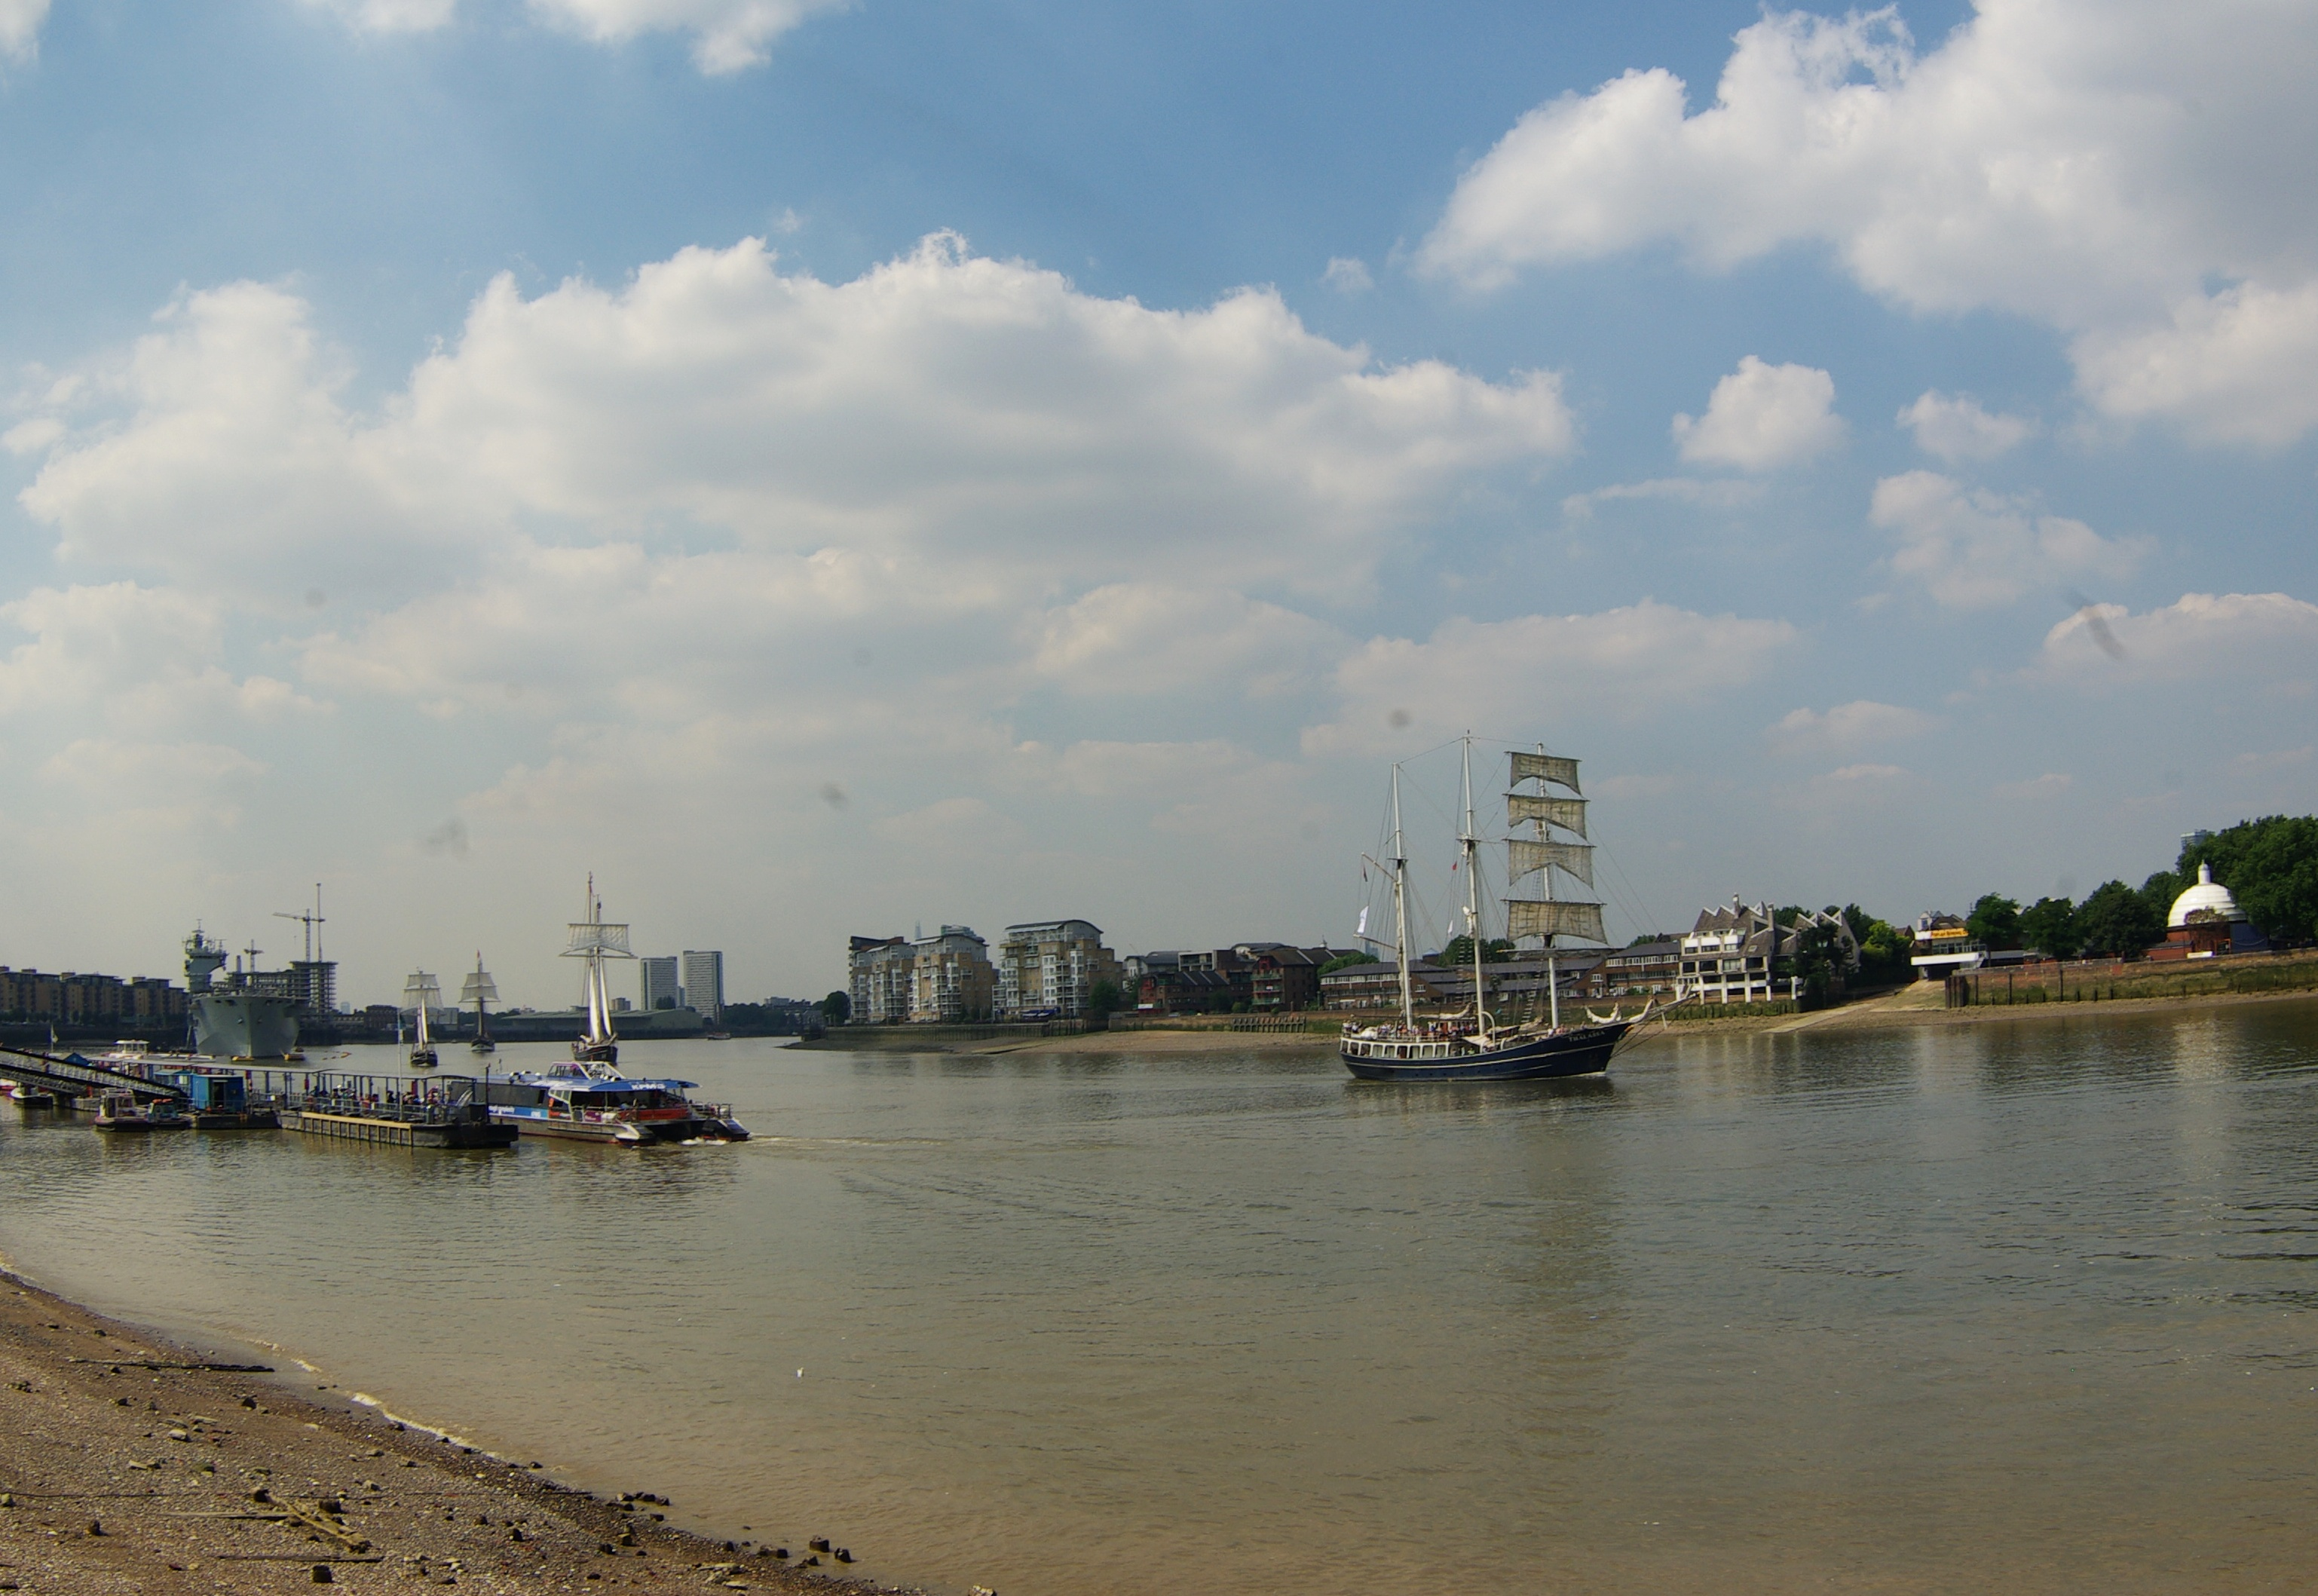 Tall ships on the Thames